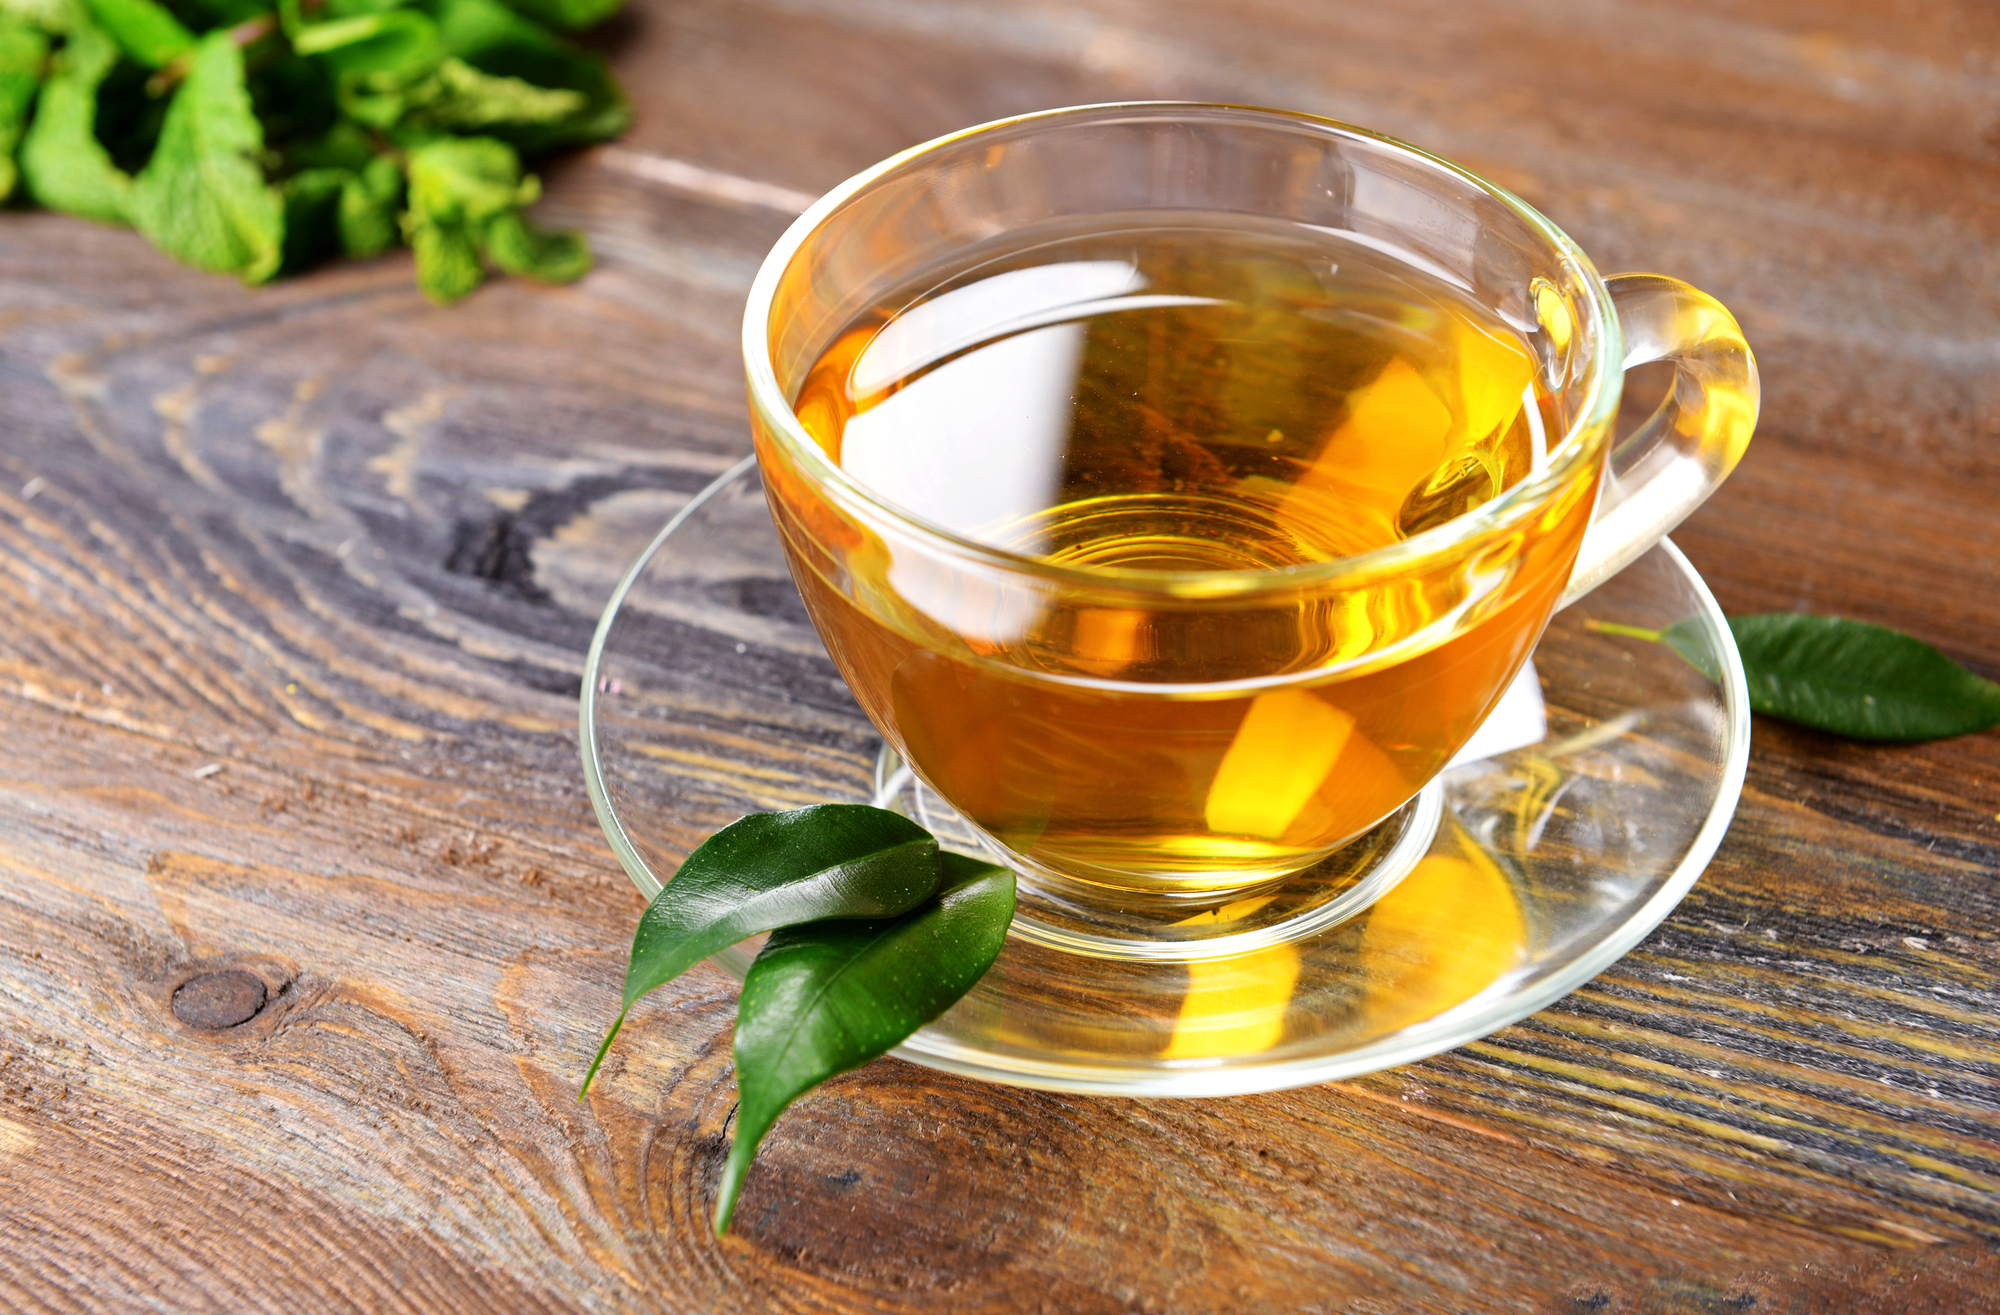 Longer lifespan linked to green tea consumption in Chinese study